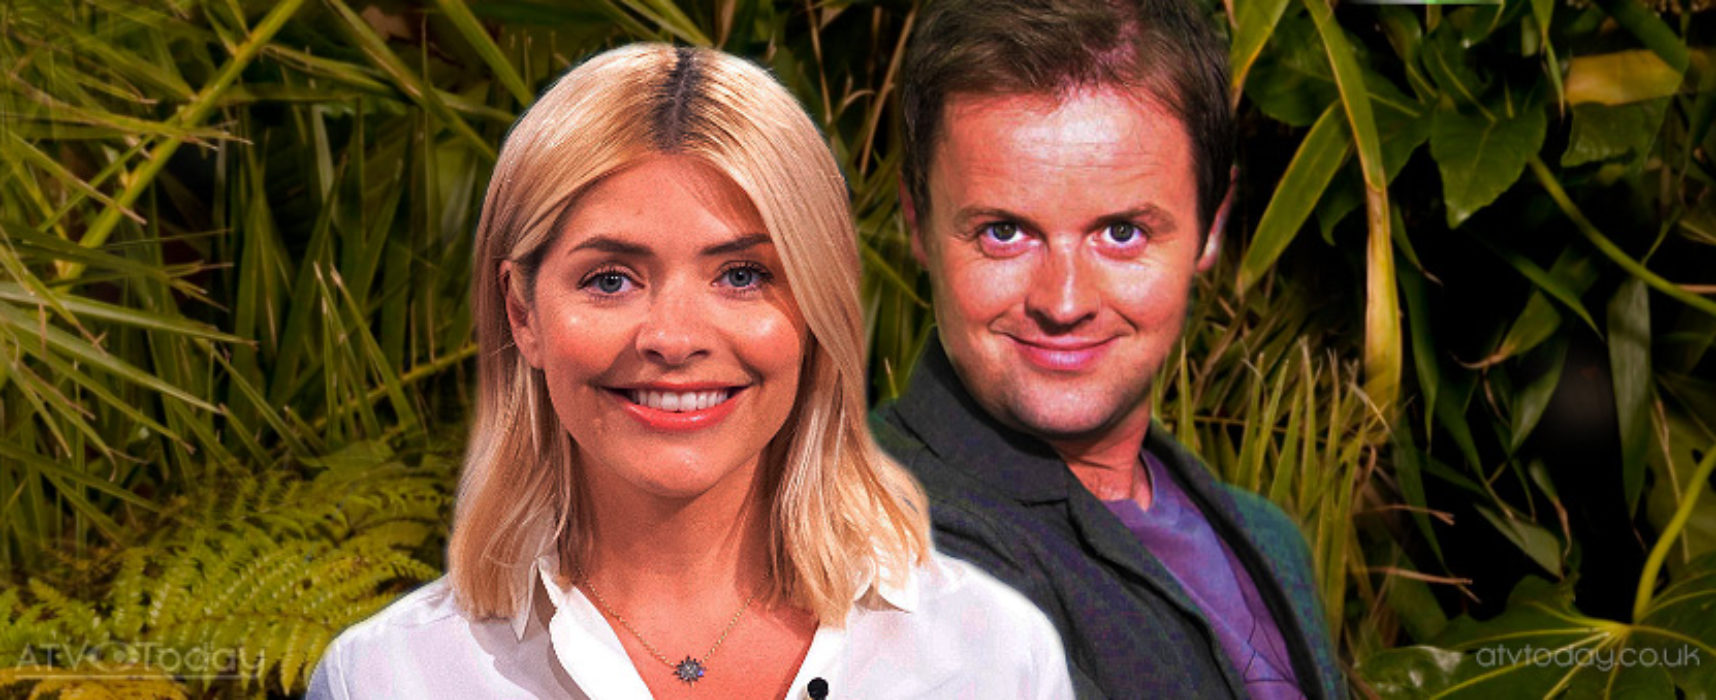 Holly Willoughby to co-host I'm A Celeb